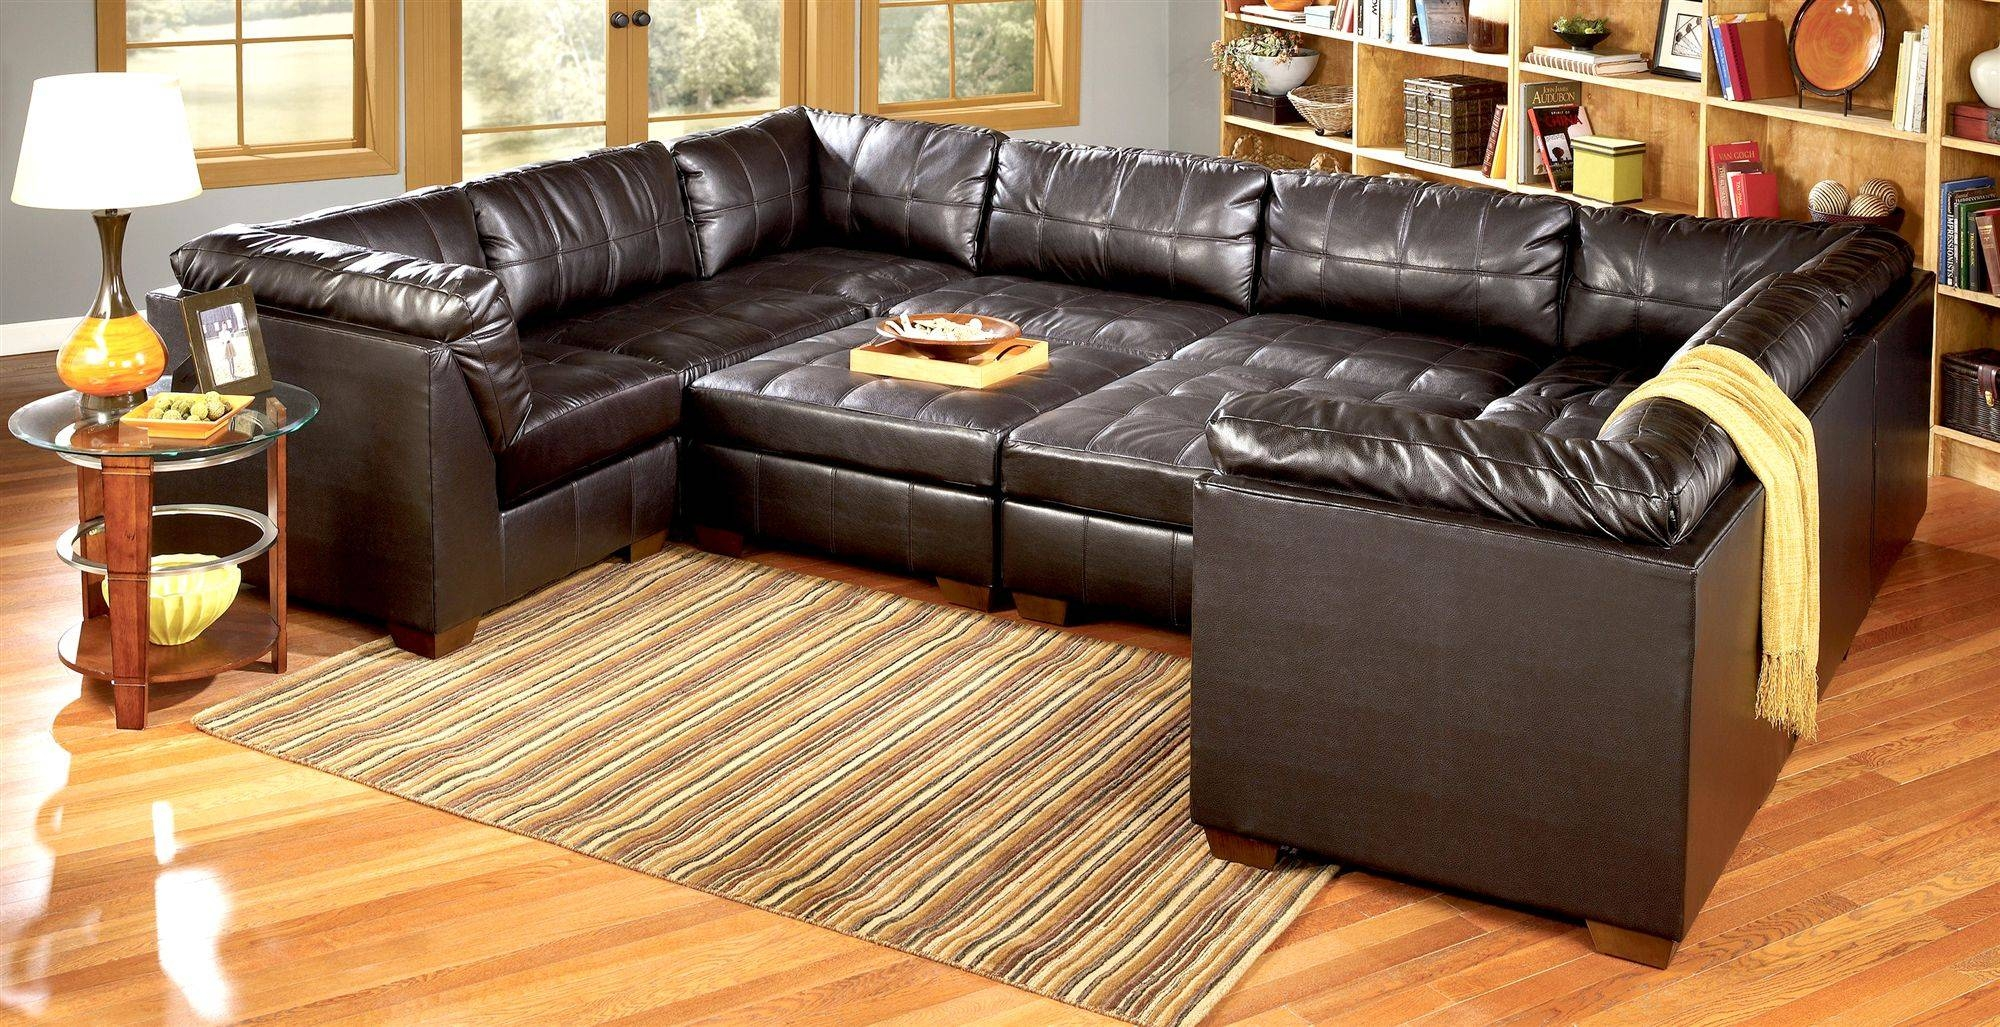 Living Room : Living Room Furniture Grey Sofas And Contemporary inside 6 Piece Leather Sectional Sofa (Image 21 of 30)